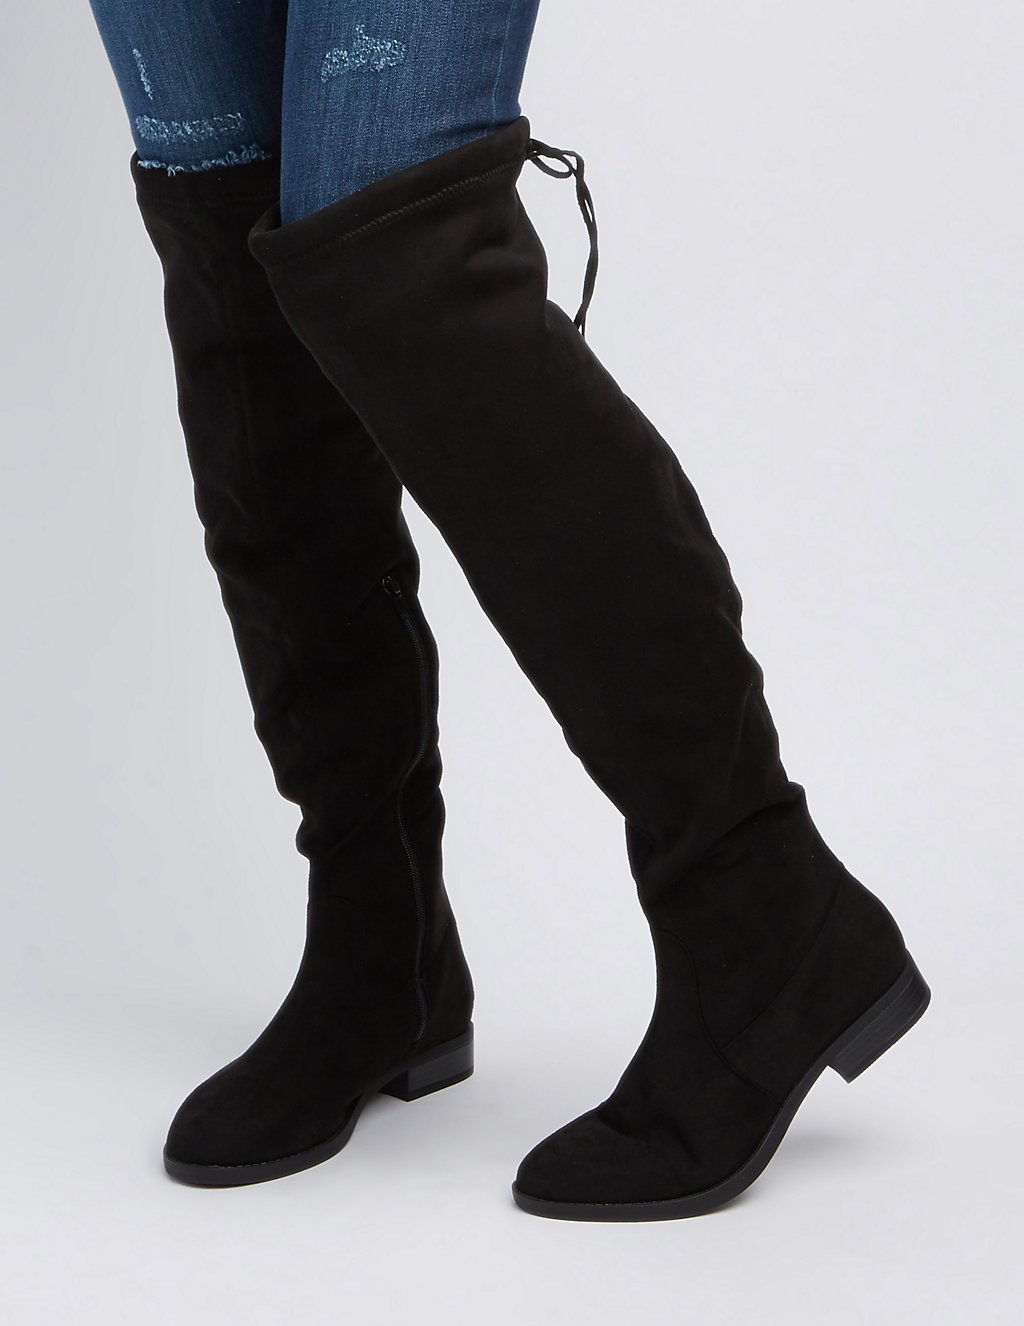 Drawstring Flat Over-The-Knee Boots | Charlotte Russe